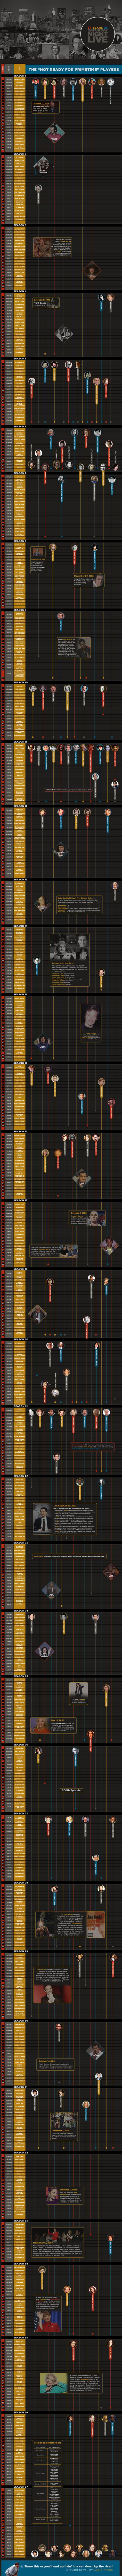 37 Years Of Saturday Night Live Infographic  Find always more on  http://infographicsmania.com